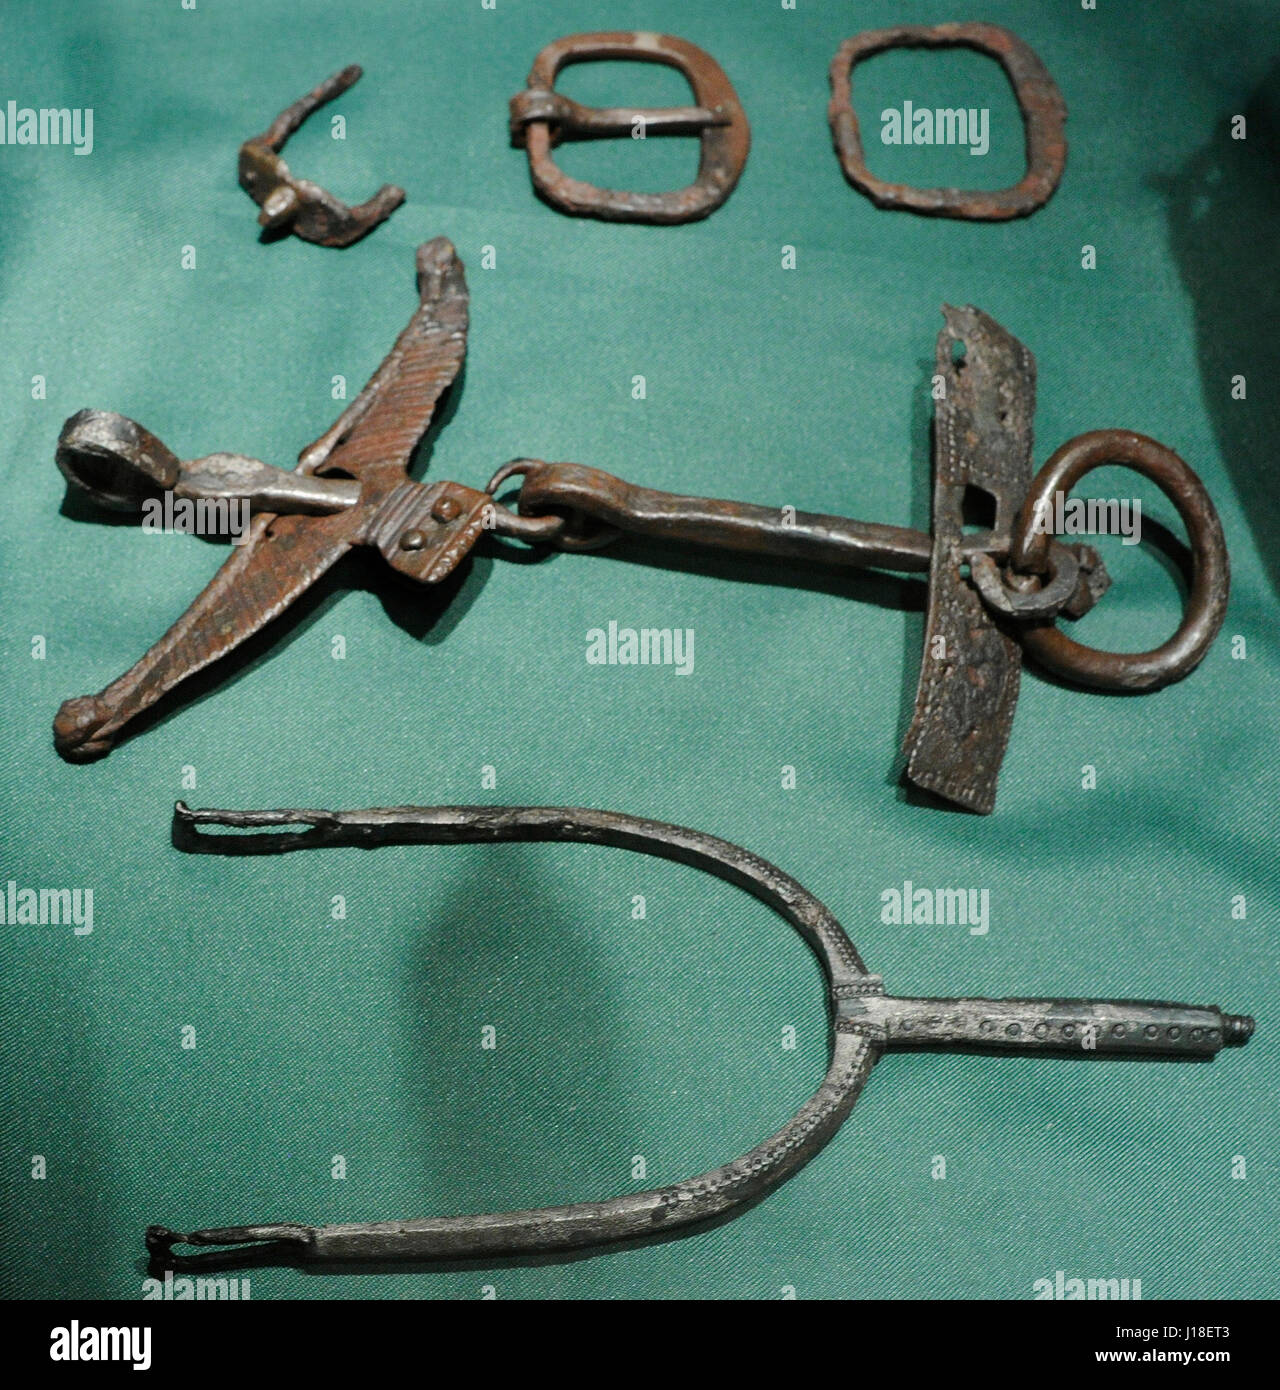 Grave-find from Asak, Skedsmo k., Akershus, 10th century. Crampon, 2 buckles, horse-bit. Norway. Historical Museum. Stock Photo